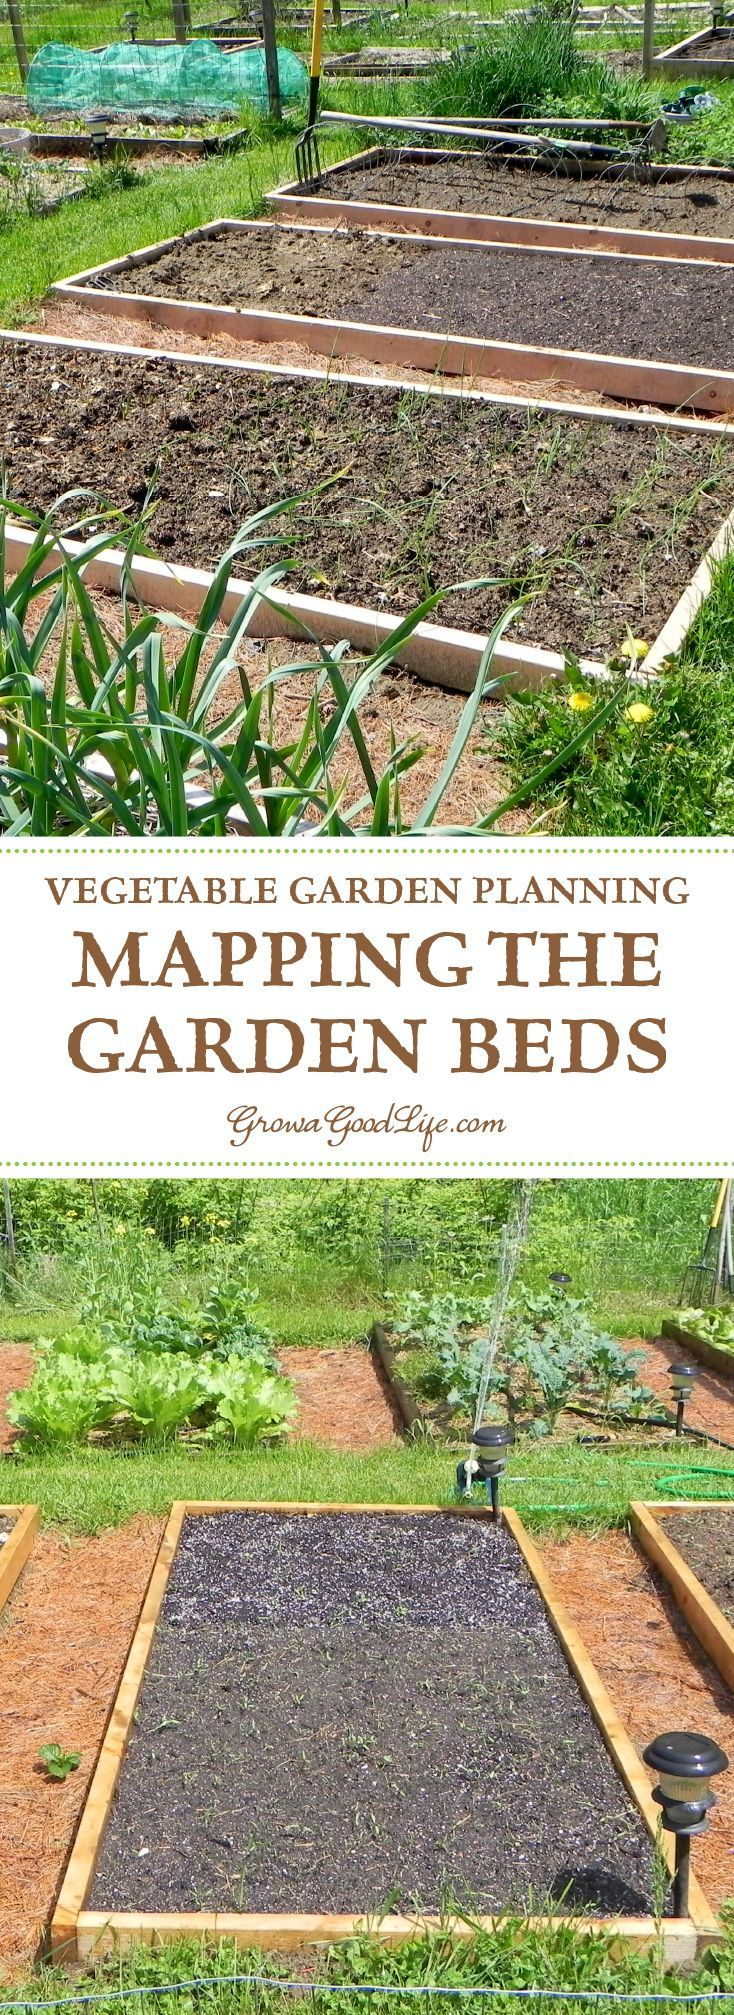 17 Best 1000 images about Garden Raised Beds Layout on Pinterest